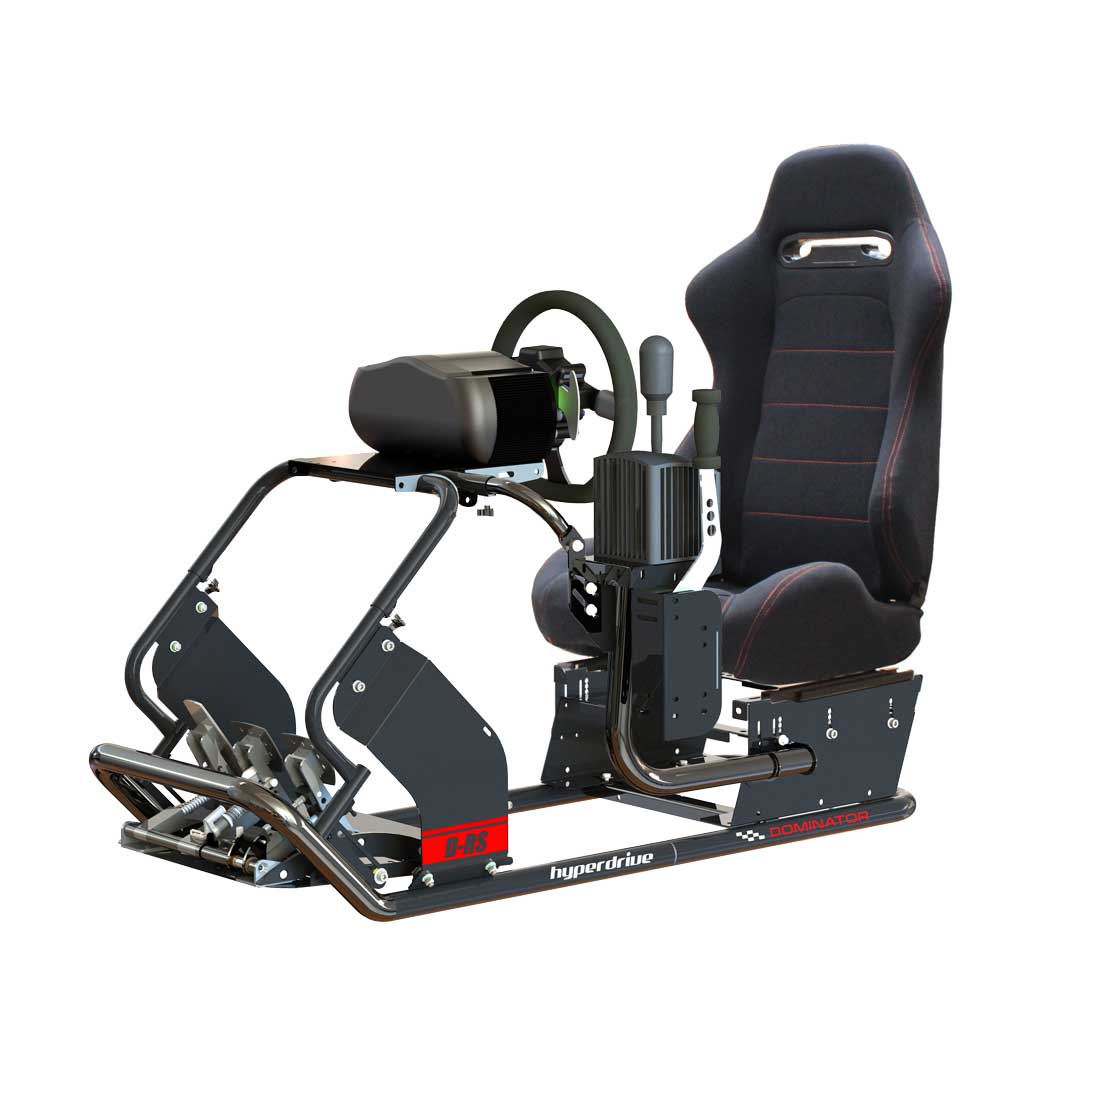 beyond the next level race simulator